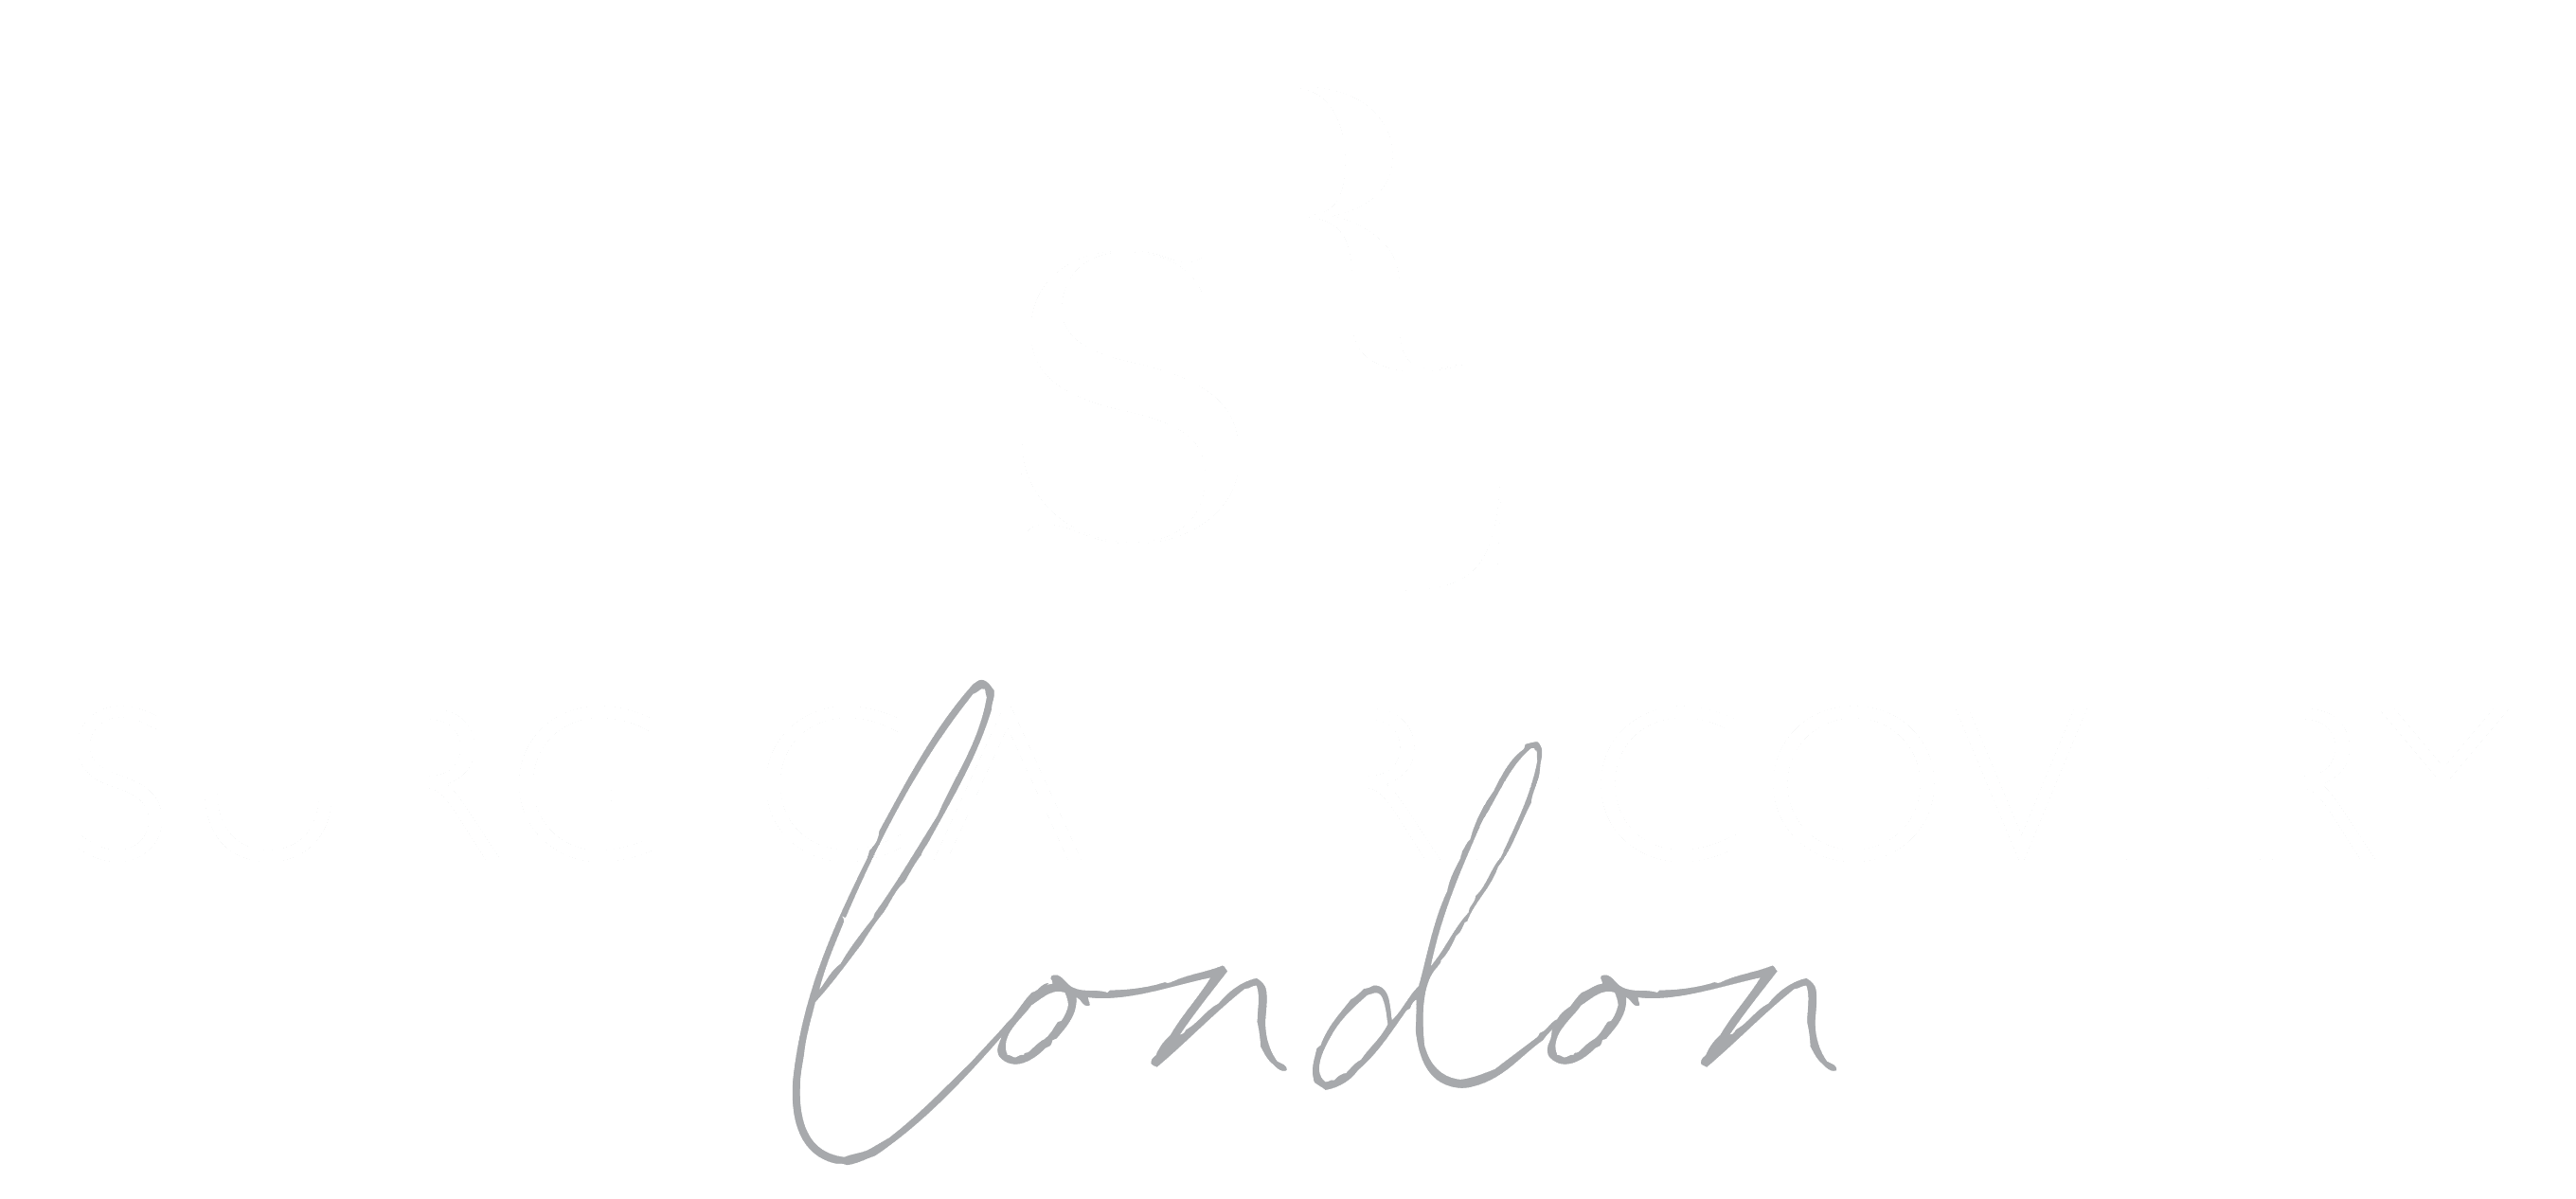 Surgical Recovery London